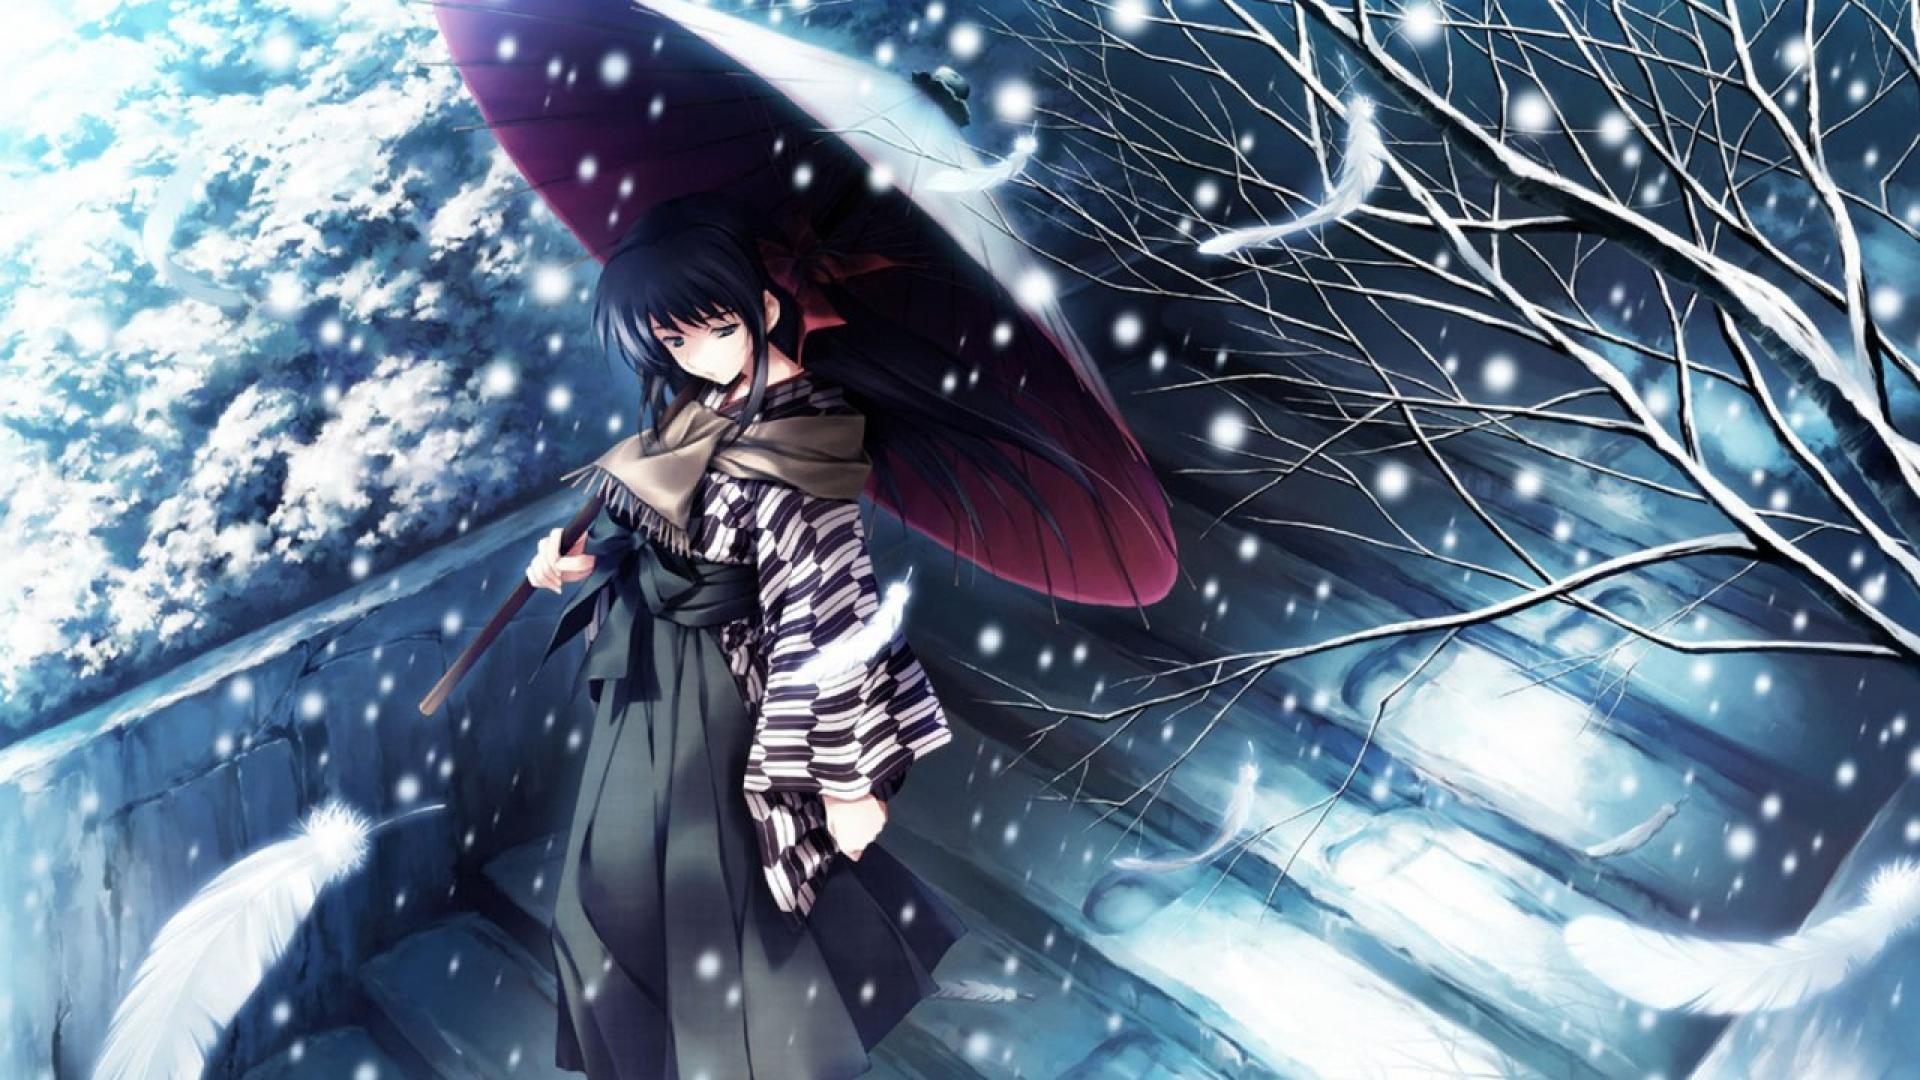 Anime Wallpaper Winter